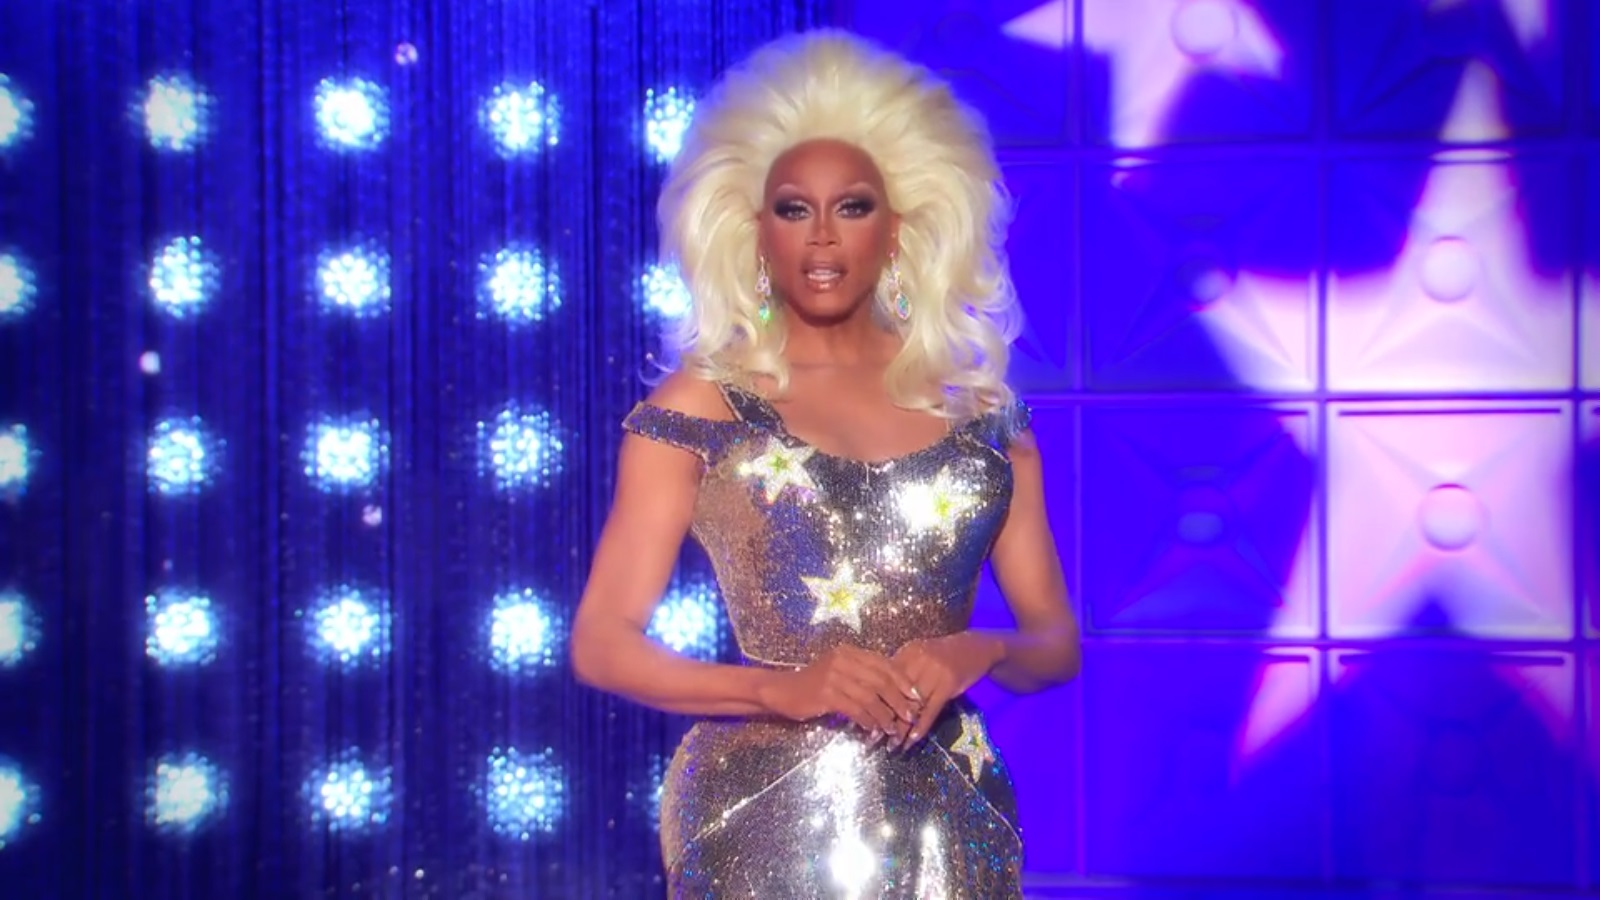 Gay couples watch TV like everyone else, but with more Drag Race